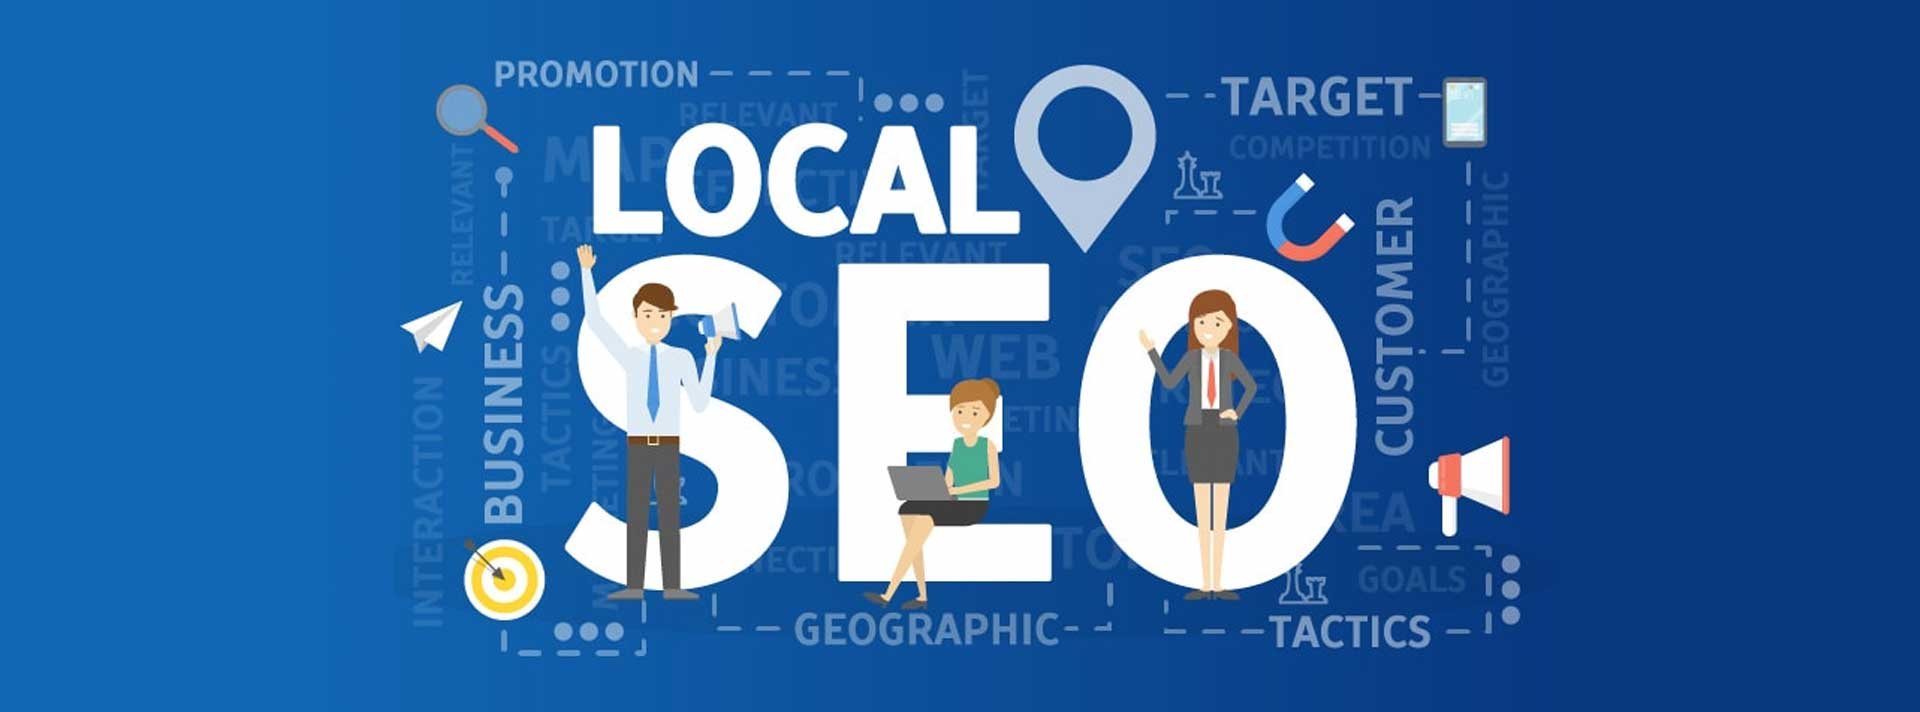 How to Succeed in Local SEO (search engine optimization) Market